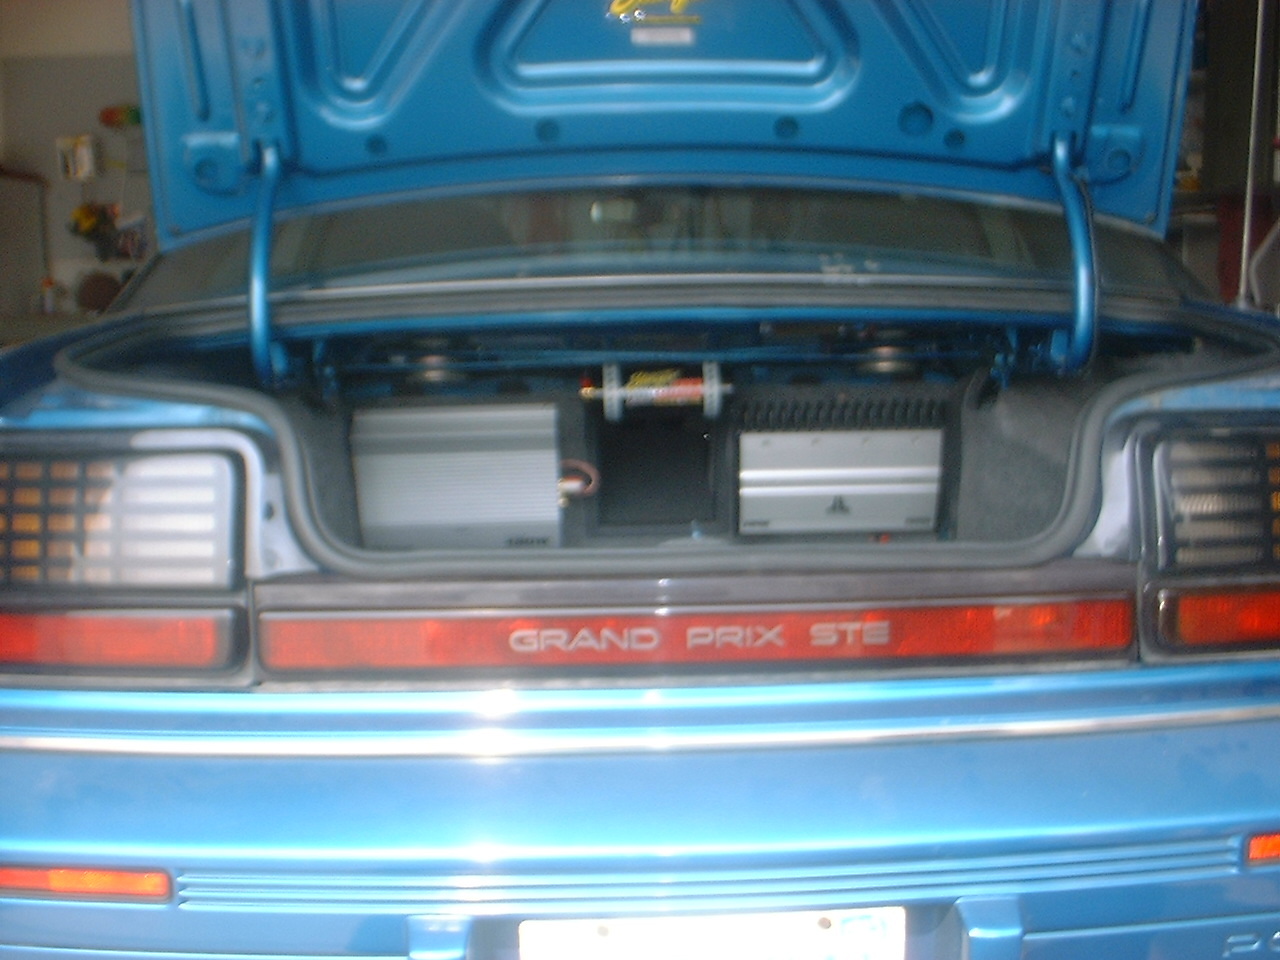 trunk wihtout subs in them